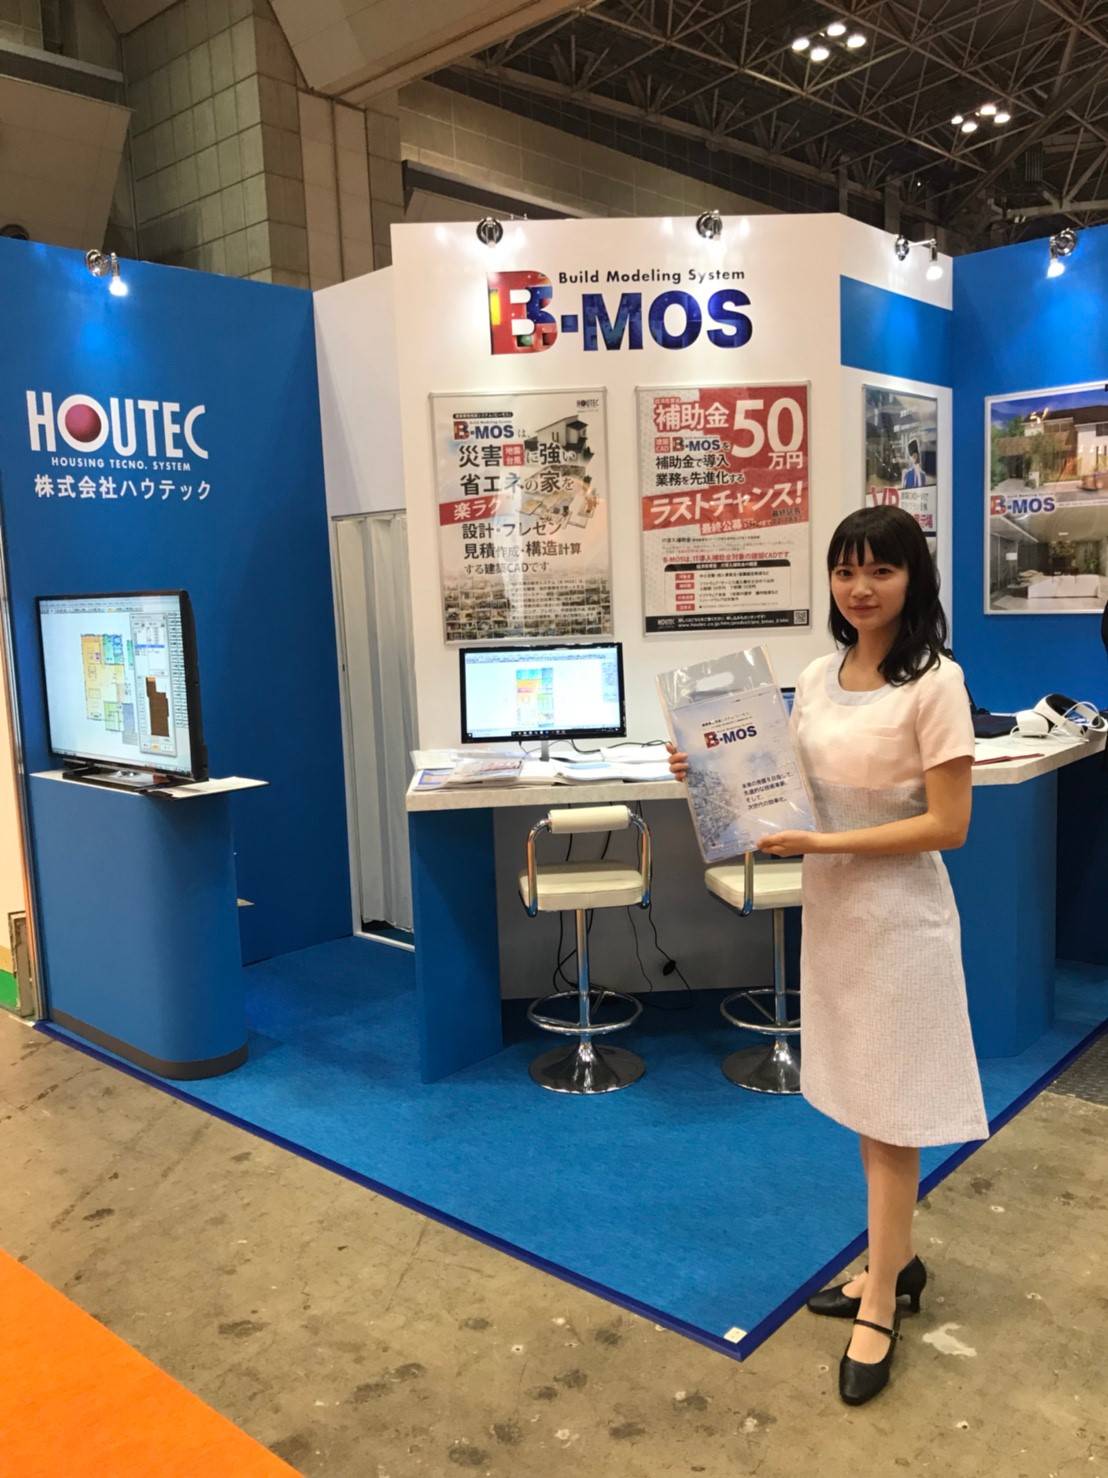 Japan Home & Building Show 2018@東京ビックサイト